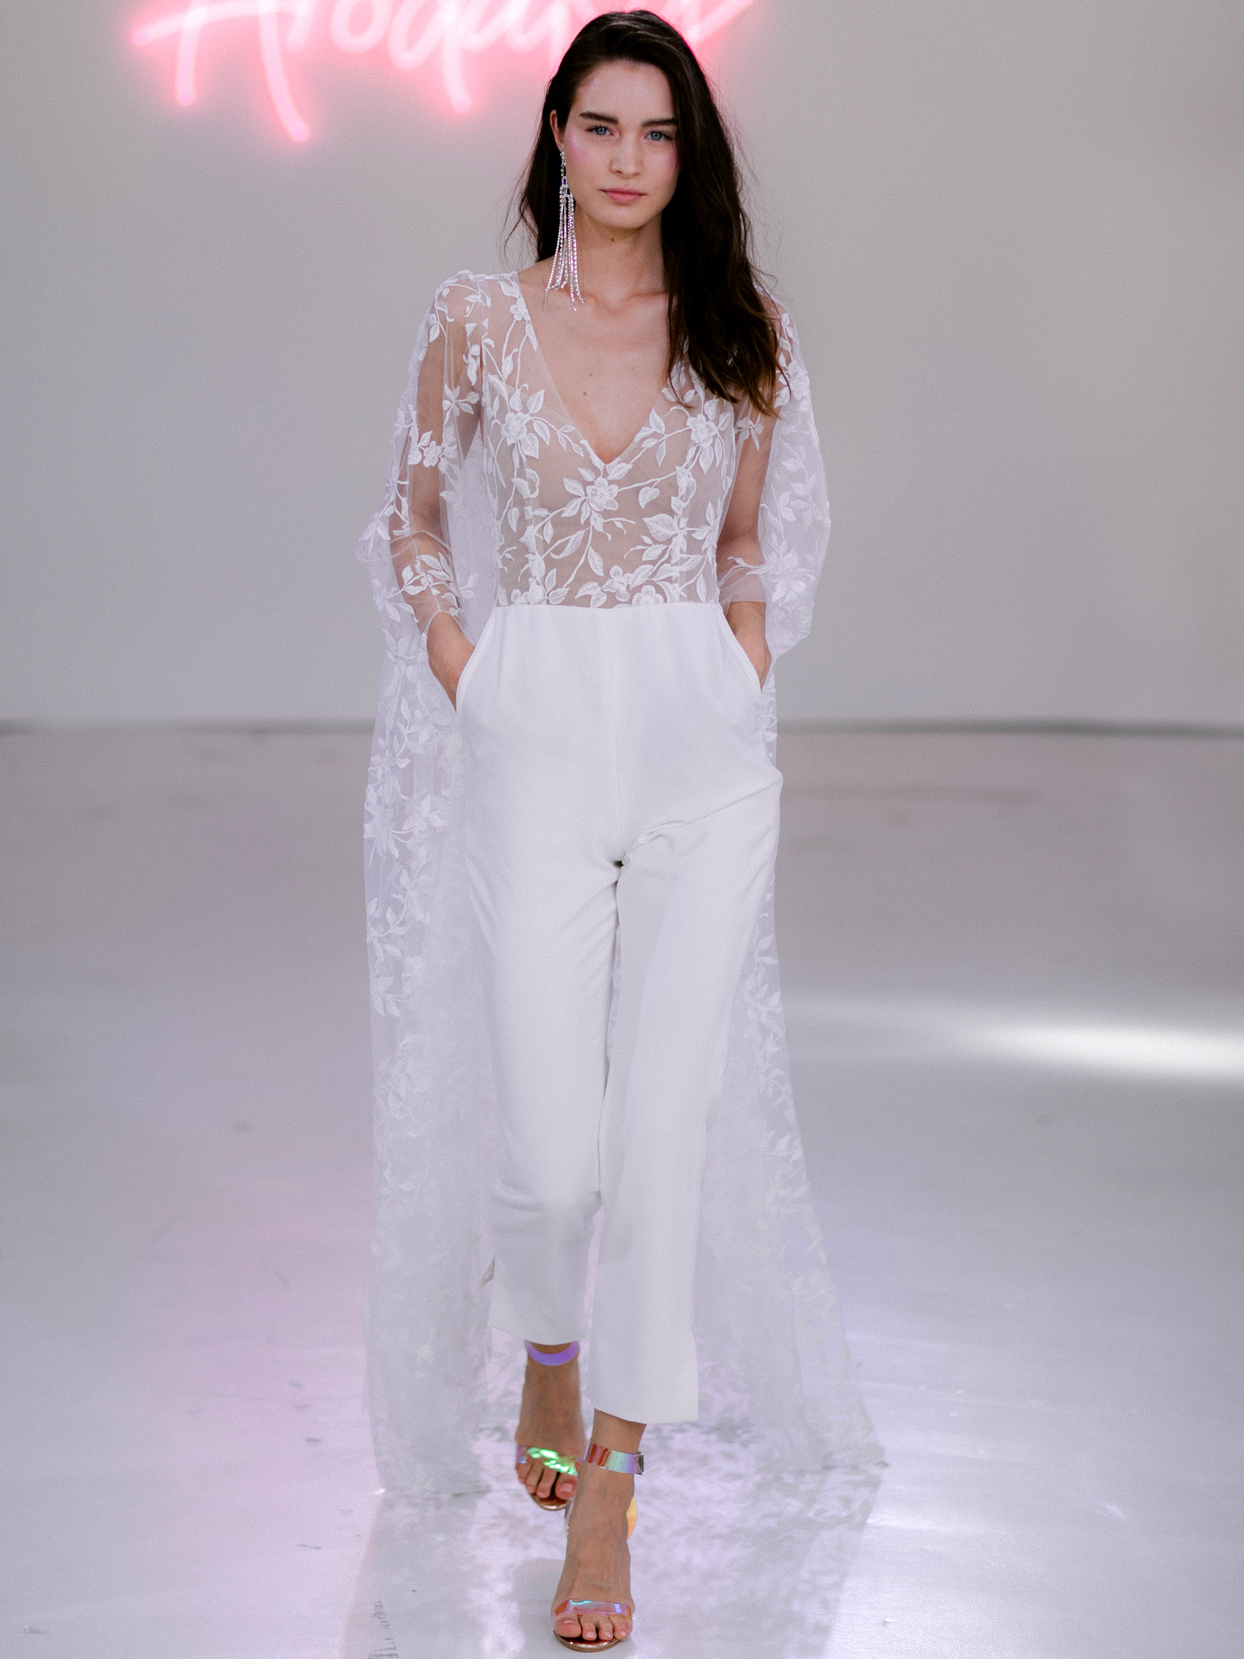 Rime Arodaky X The Mews Bridal sheer top pockets jumpsuit wedding dress fall 2020